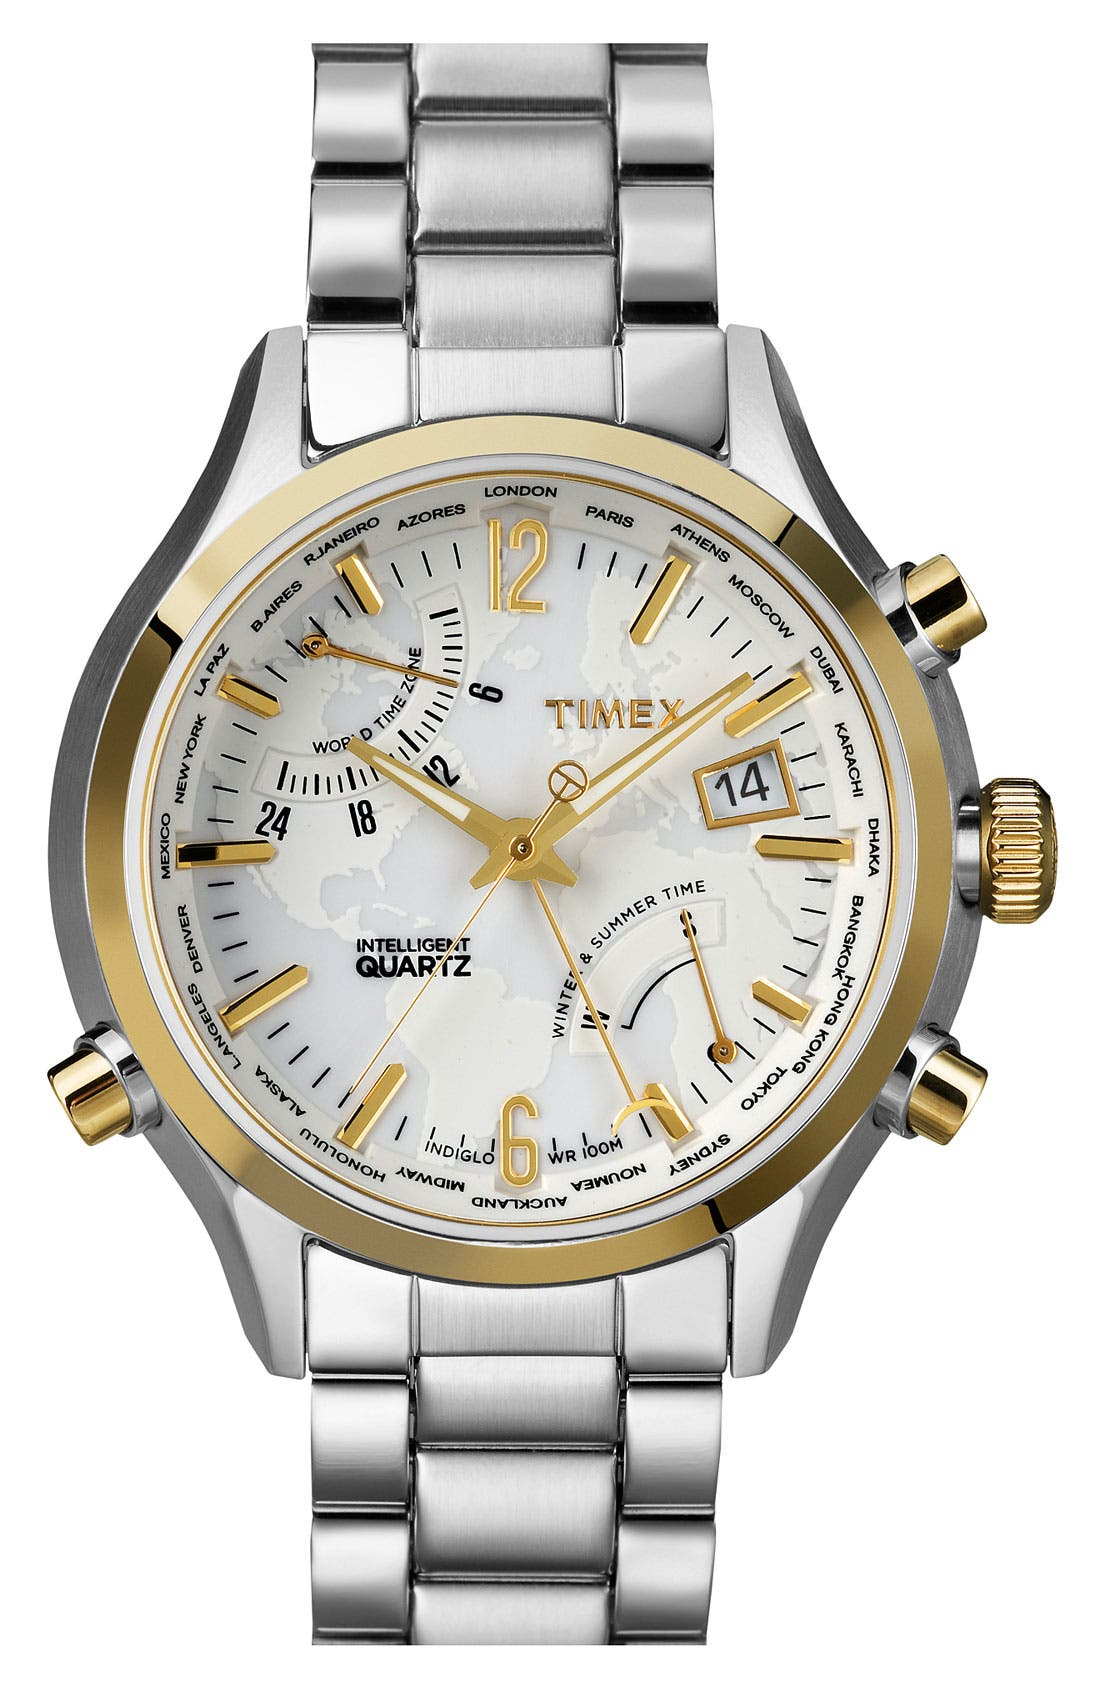 Main Image - Timex® 'Intelligent Quartz' World Time Bracelet Watch, 44mm